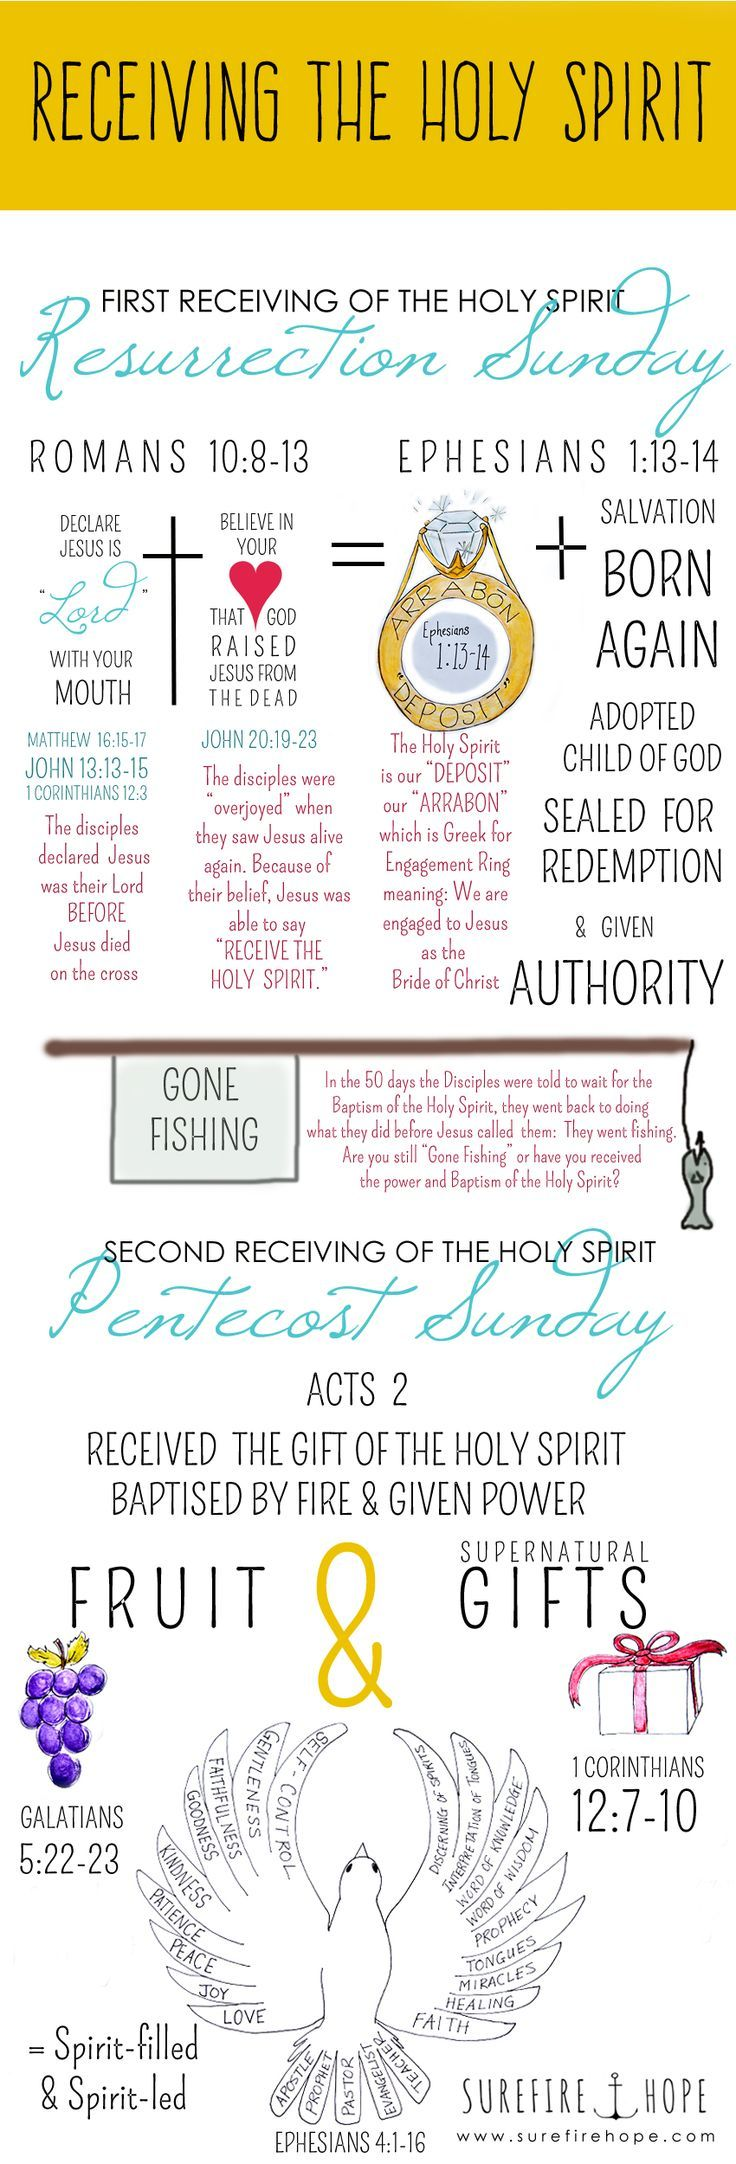 "Receiving the Holy Spirit - Surefire Hope - Bible Study Blog | www.surefirehope.com | Jesus told the disciples to ""Receive the Holy Spirit"" (John 20:19-23) but He also told them wait for the Baptism of the Holy Spirit (Luke 24:49, Acts 1:4-5). So what did they receive when Jesus blew on them Resurrection Sunday, and how is that receiving of the Holy Spirit different than what they were told to wait for? God's Word shows us that there are two distinct receivings of the Holy Spir"